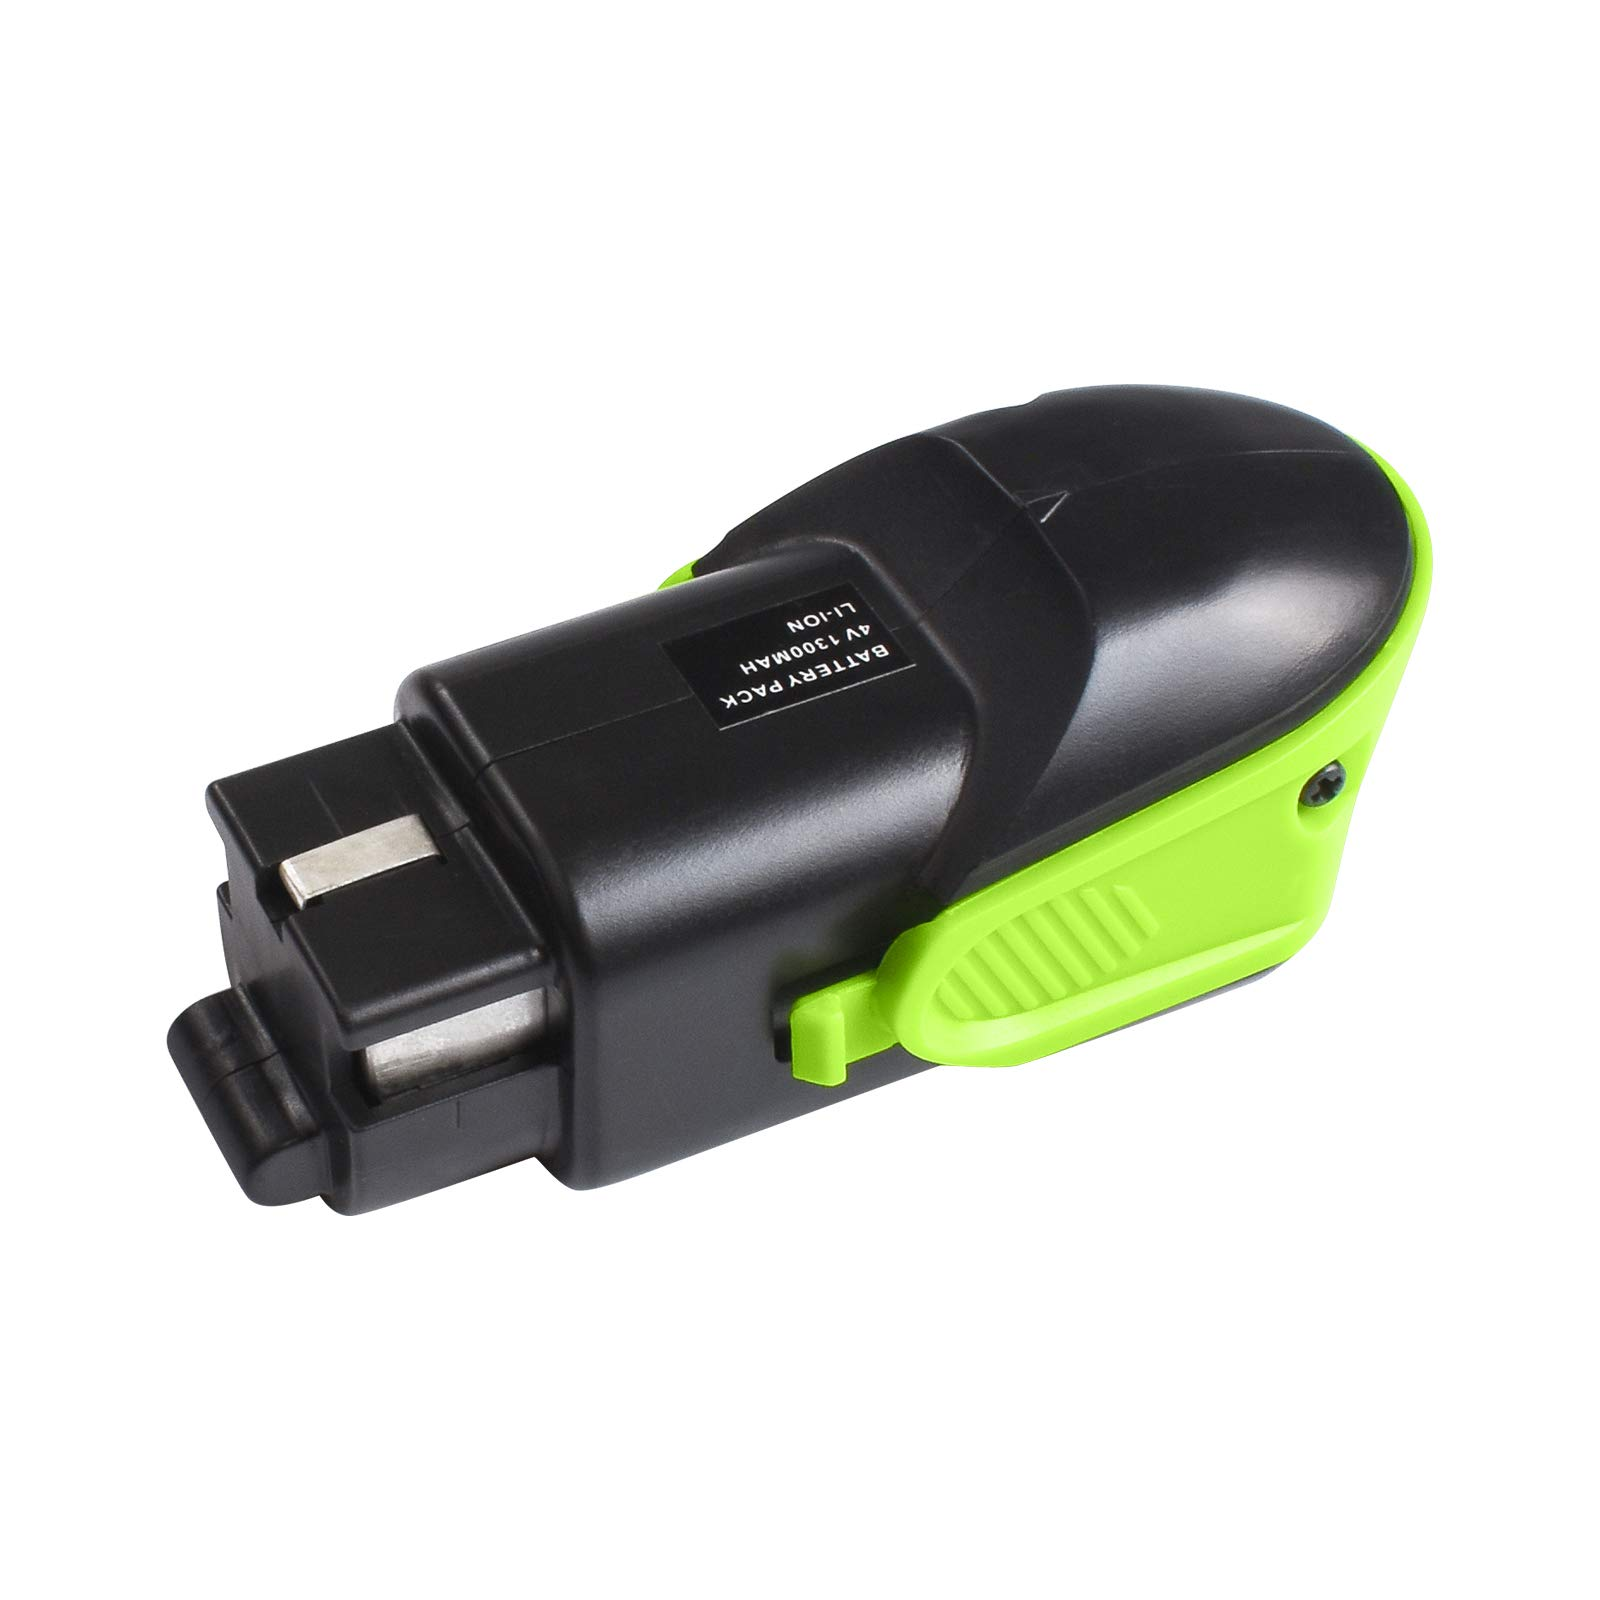 Replacement Battery for Hawkforce 4V 1300mAh Li-ion Cordless Electric Scissors Cloth Cutter